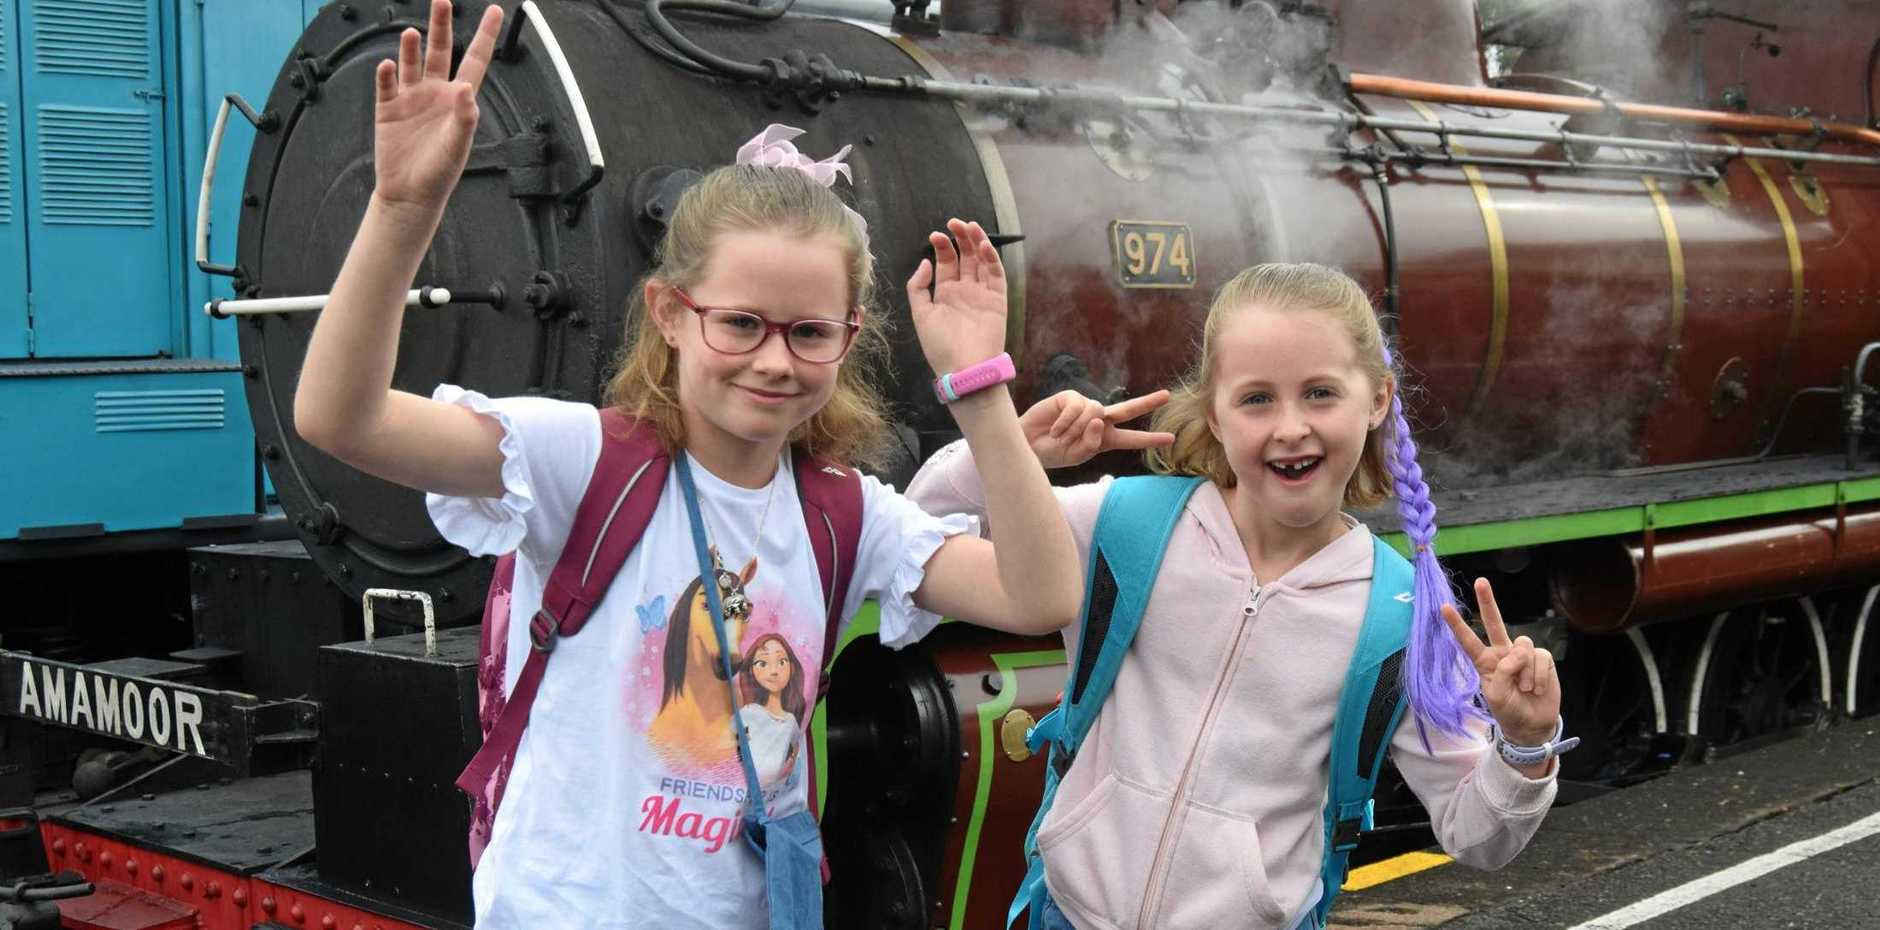 EXCITED: Emily and Gemma Bryce were excited to board the Mary Valley Rattler to Amamoor today as part of Holiday Express.